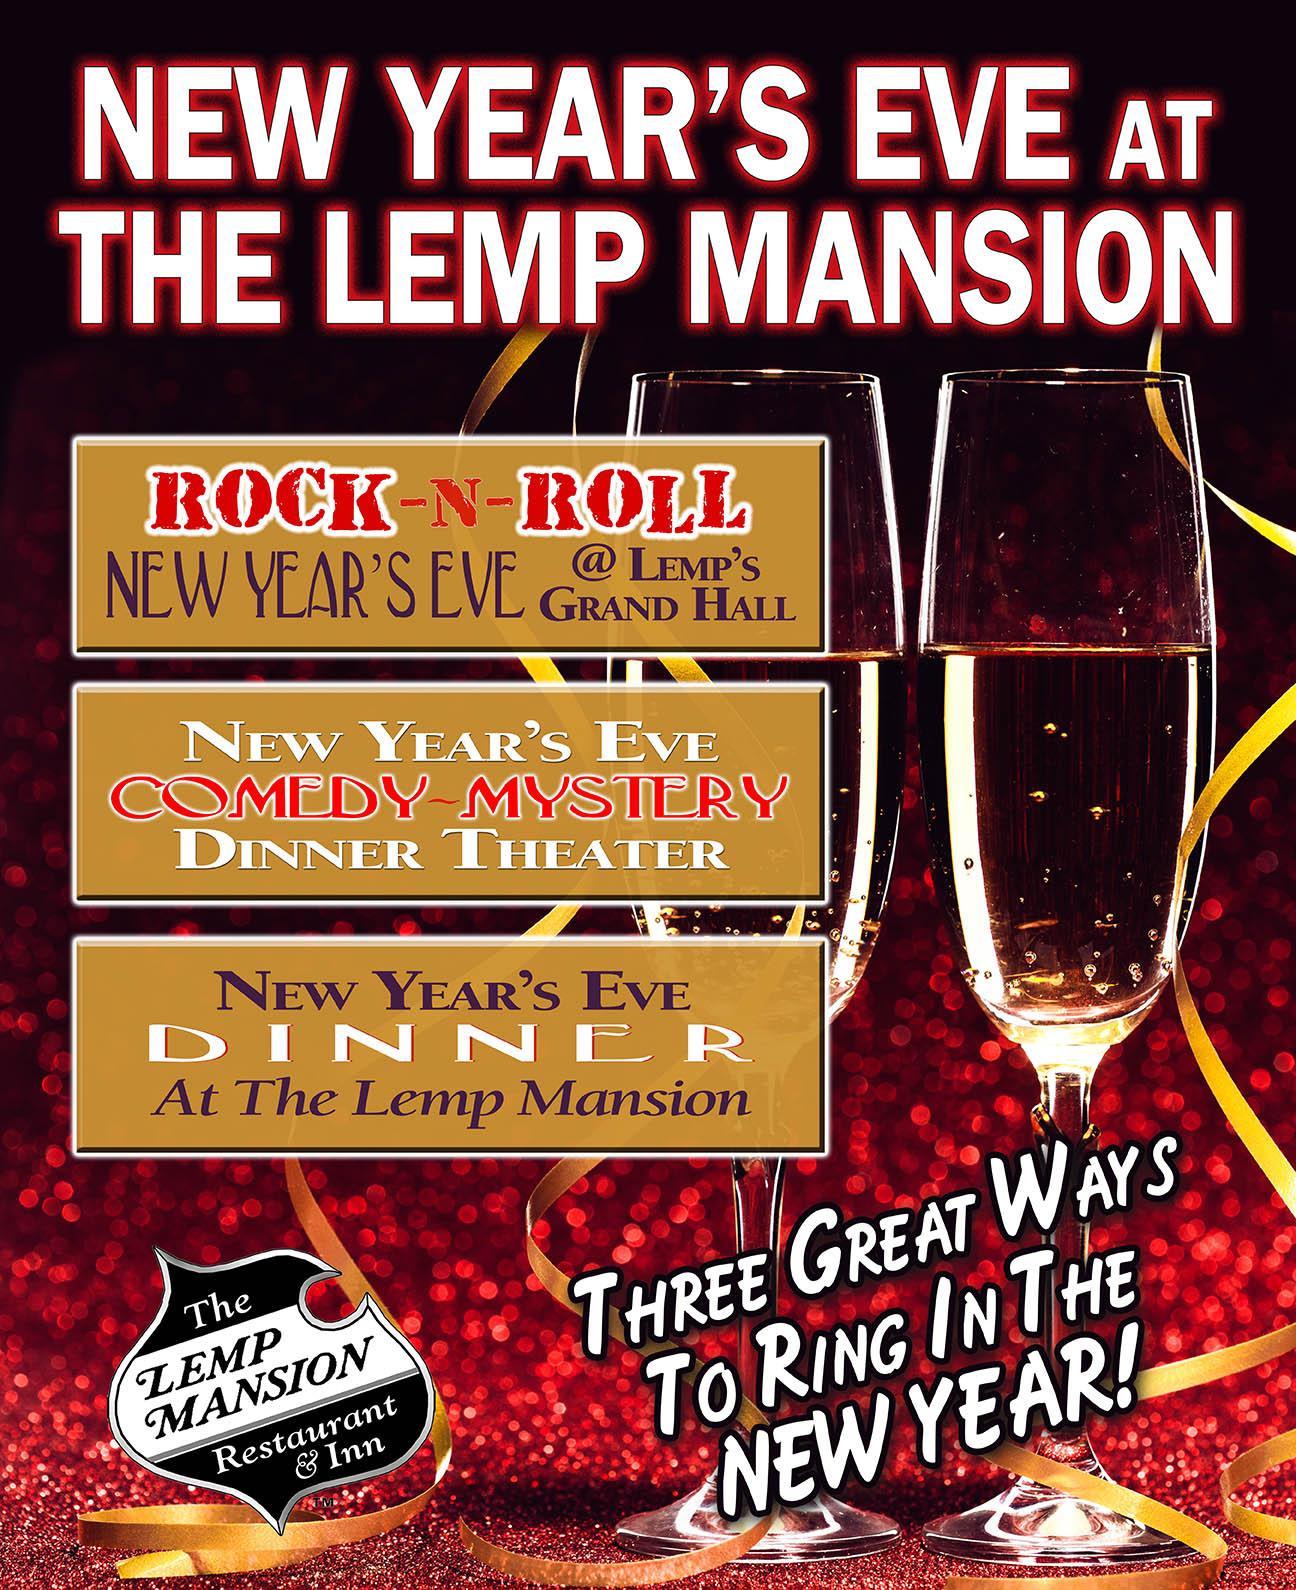 LEMP MANSION NEW YEAR'S EVE